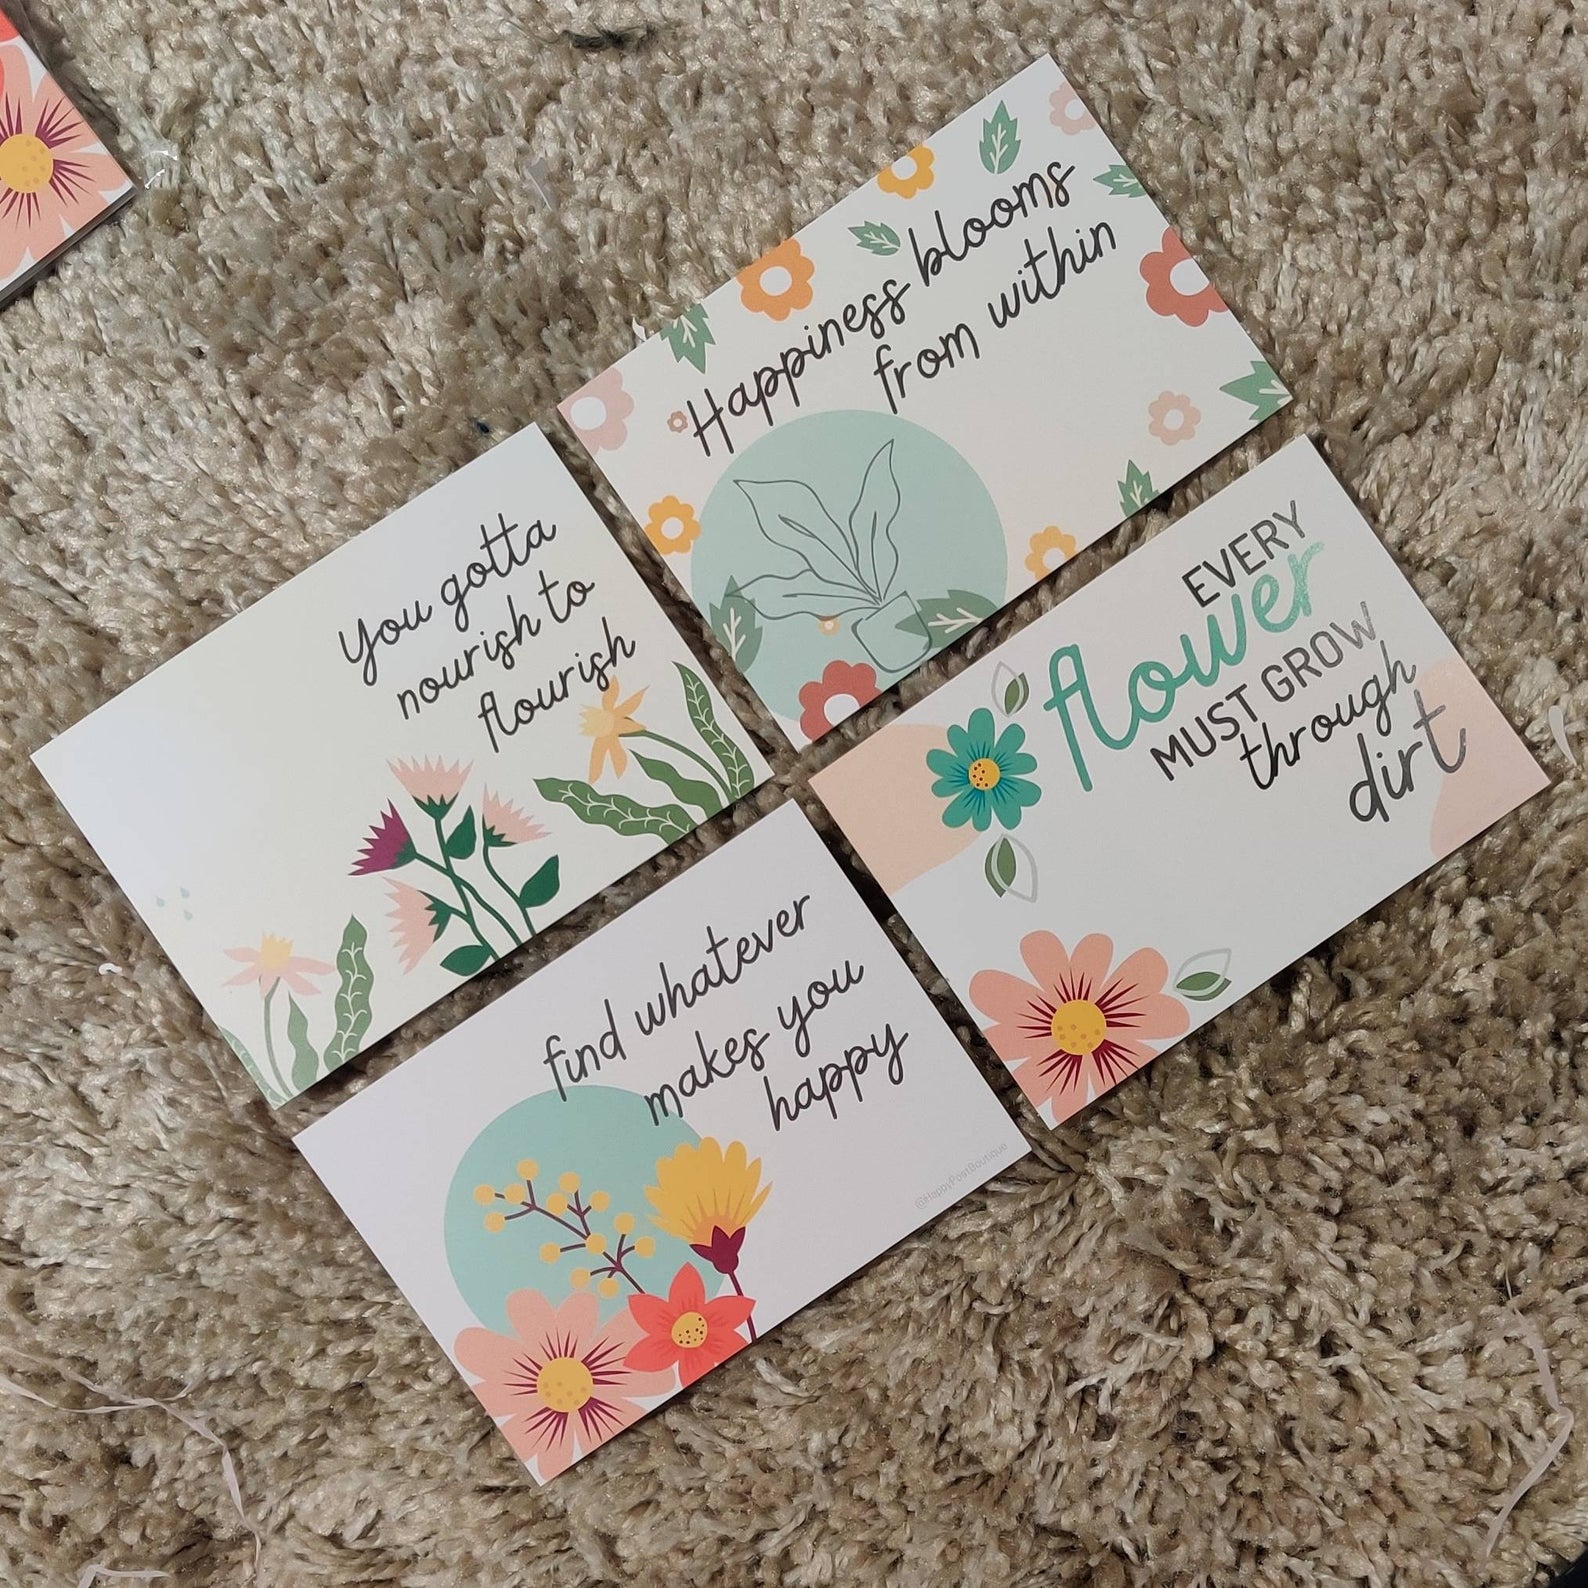 Floral Post Cards | Positive Post Cards | Cute Post Cards | Mental Health Support | Positive Reminder | Encouragement |Charity Donation Kind Shop